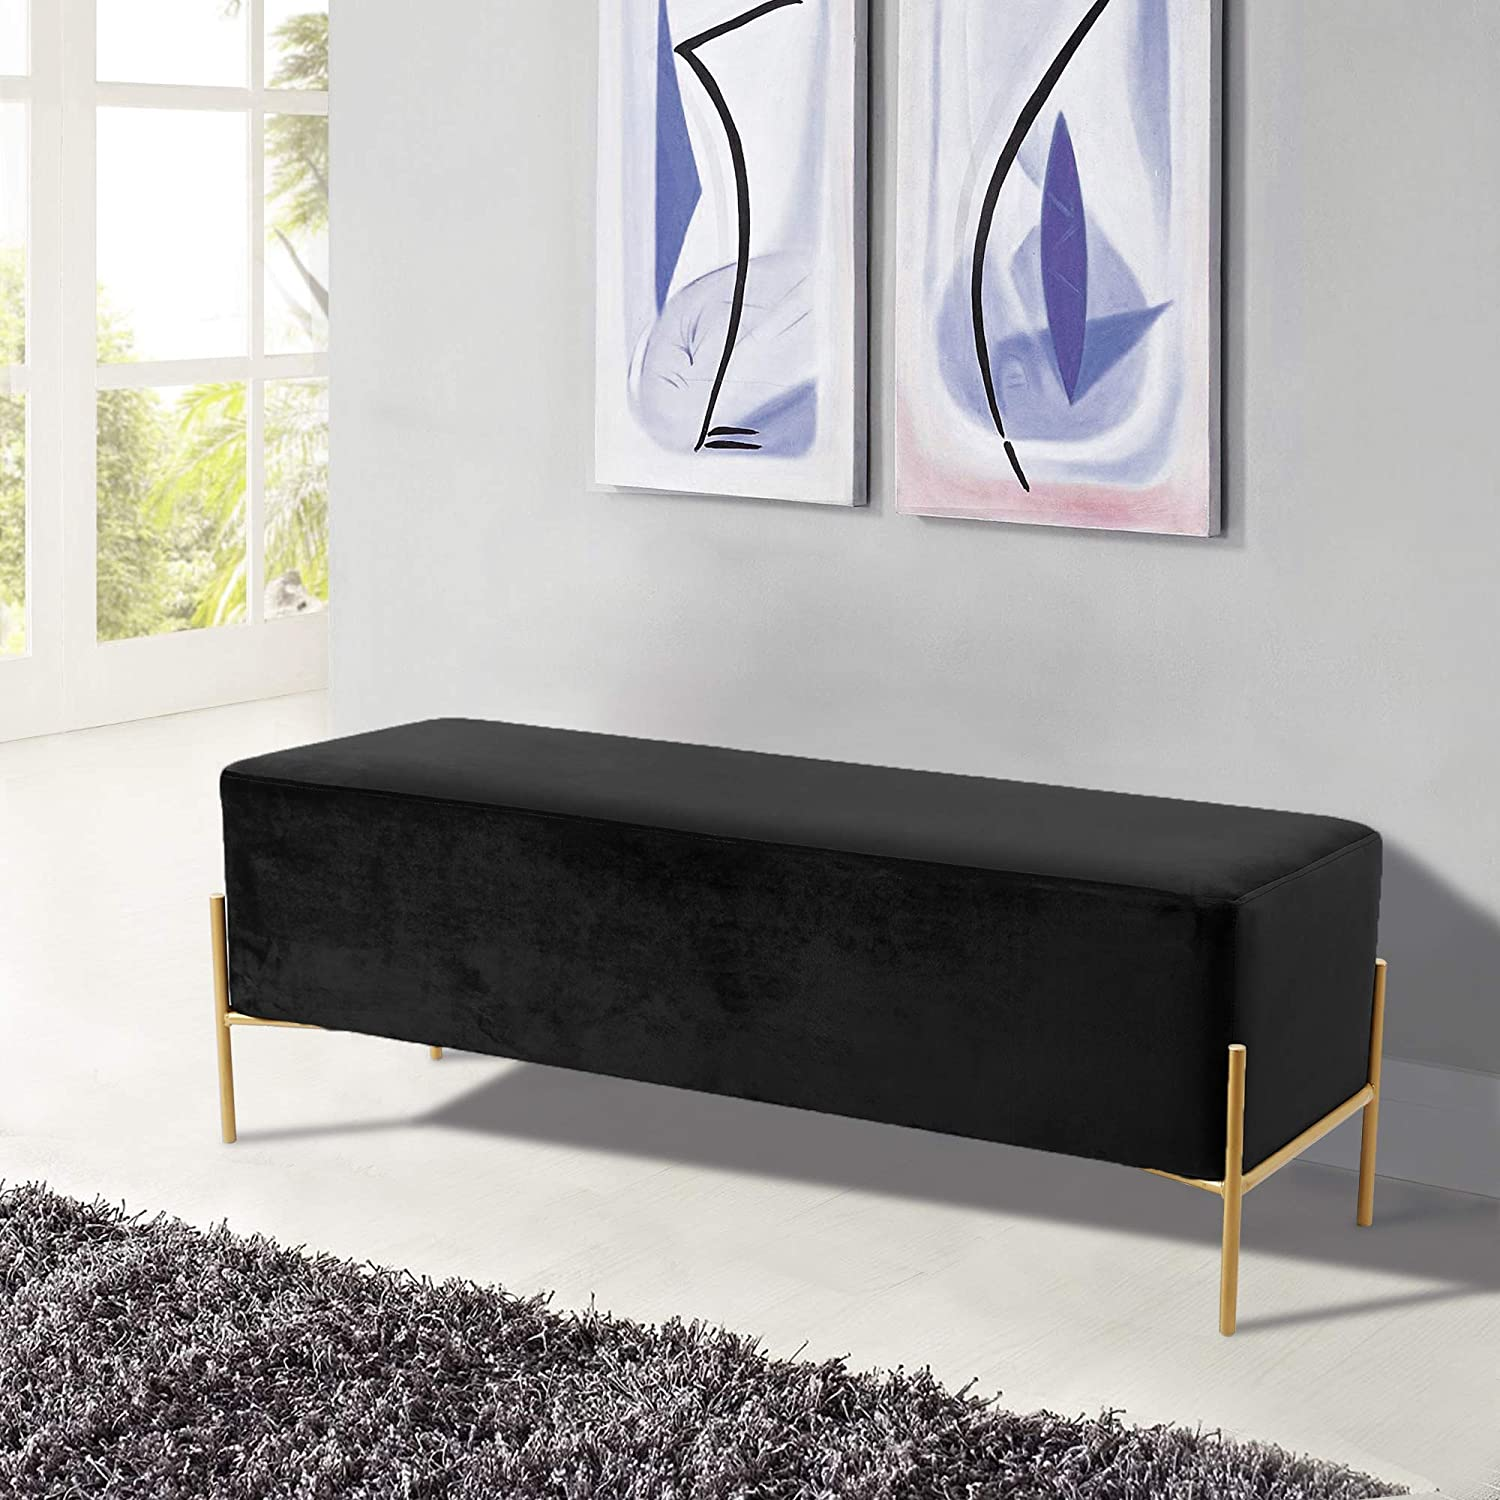 Contemporary Velvet Upholstered Bench with Stainless Steel Legs in a Rich Gold Finish 48 W x 16 D x 17 H Meridian Furniture 143Cream Isla Collection Modern Cream